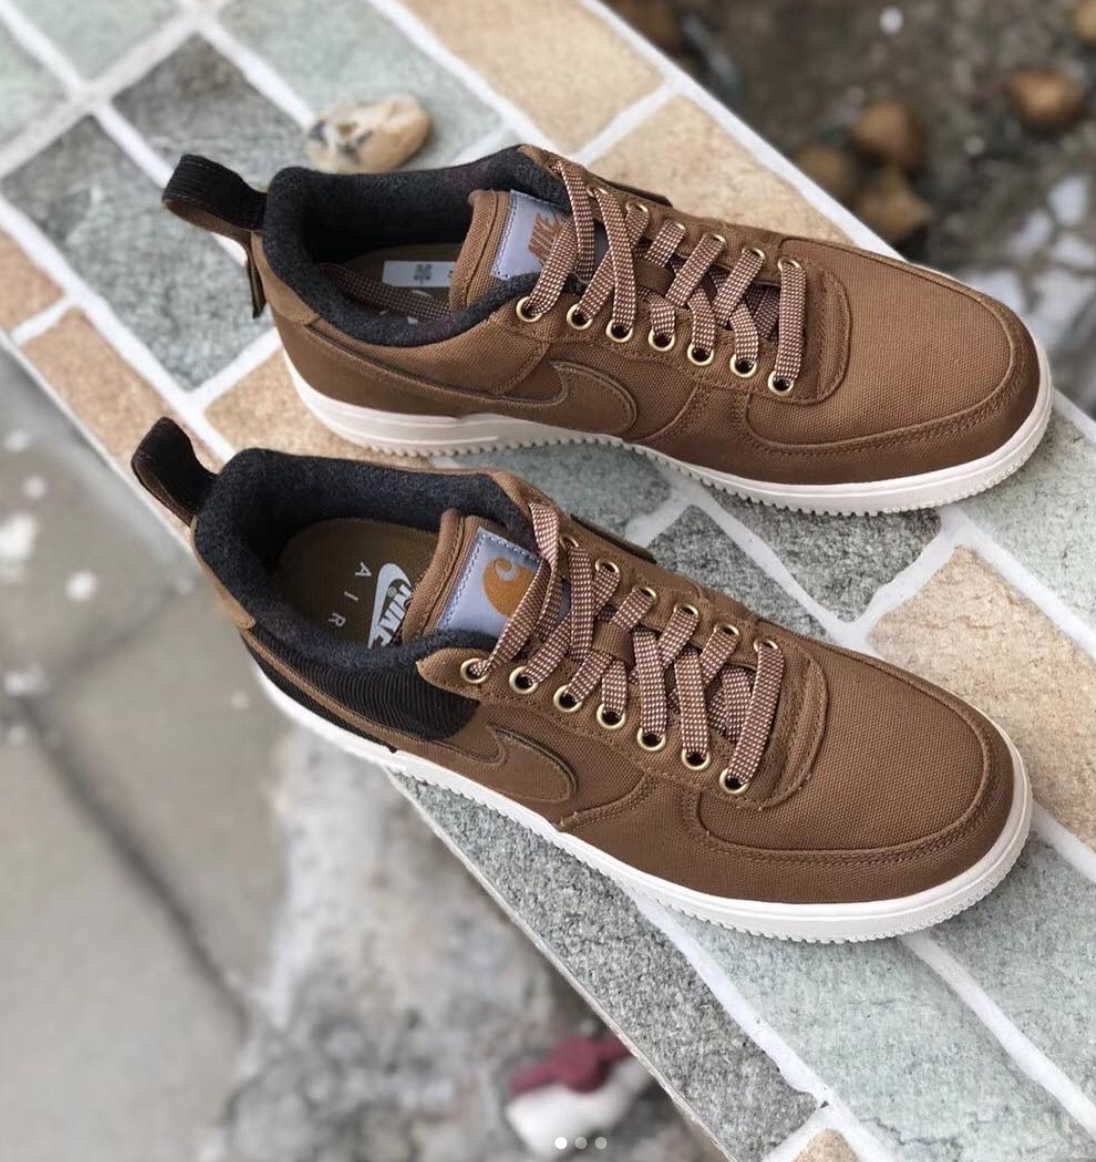 4257e13d3413b7 Emporium of Tings. Web Magazine. - https   drwong.live. Here s a first full  look at the Carhartt WIP x Nike Air Force 1 Low ...